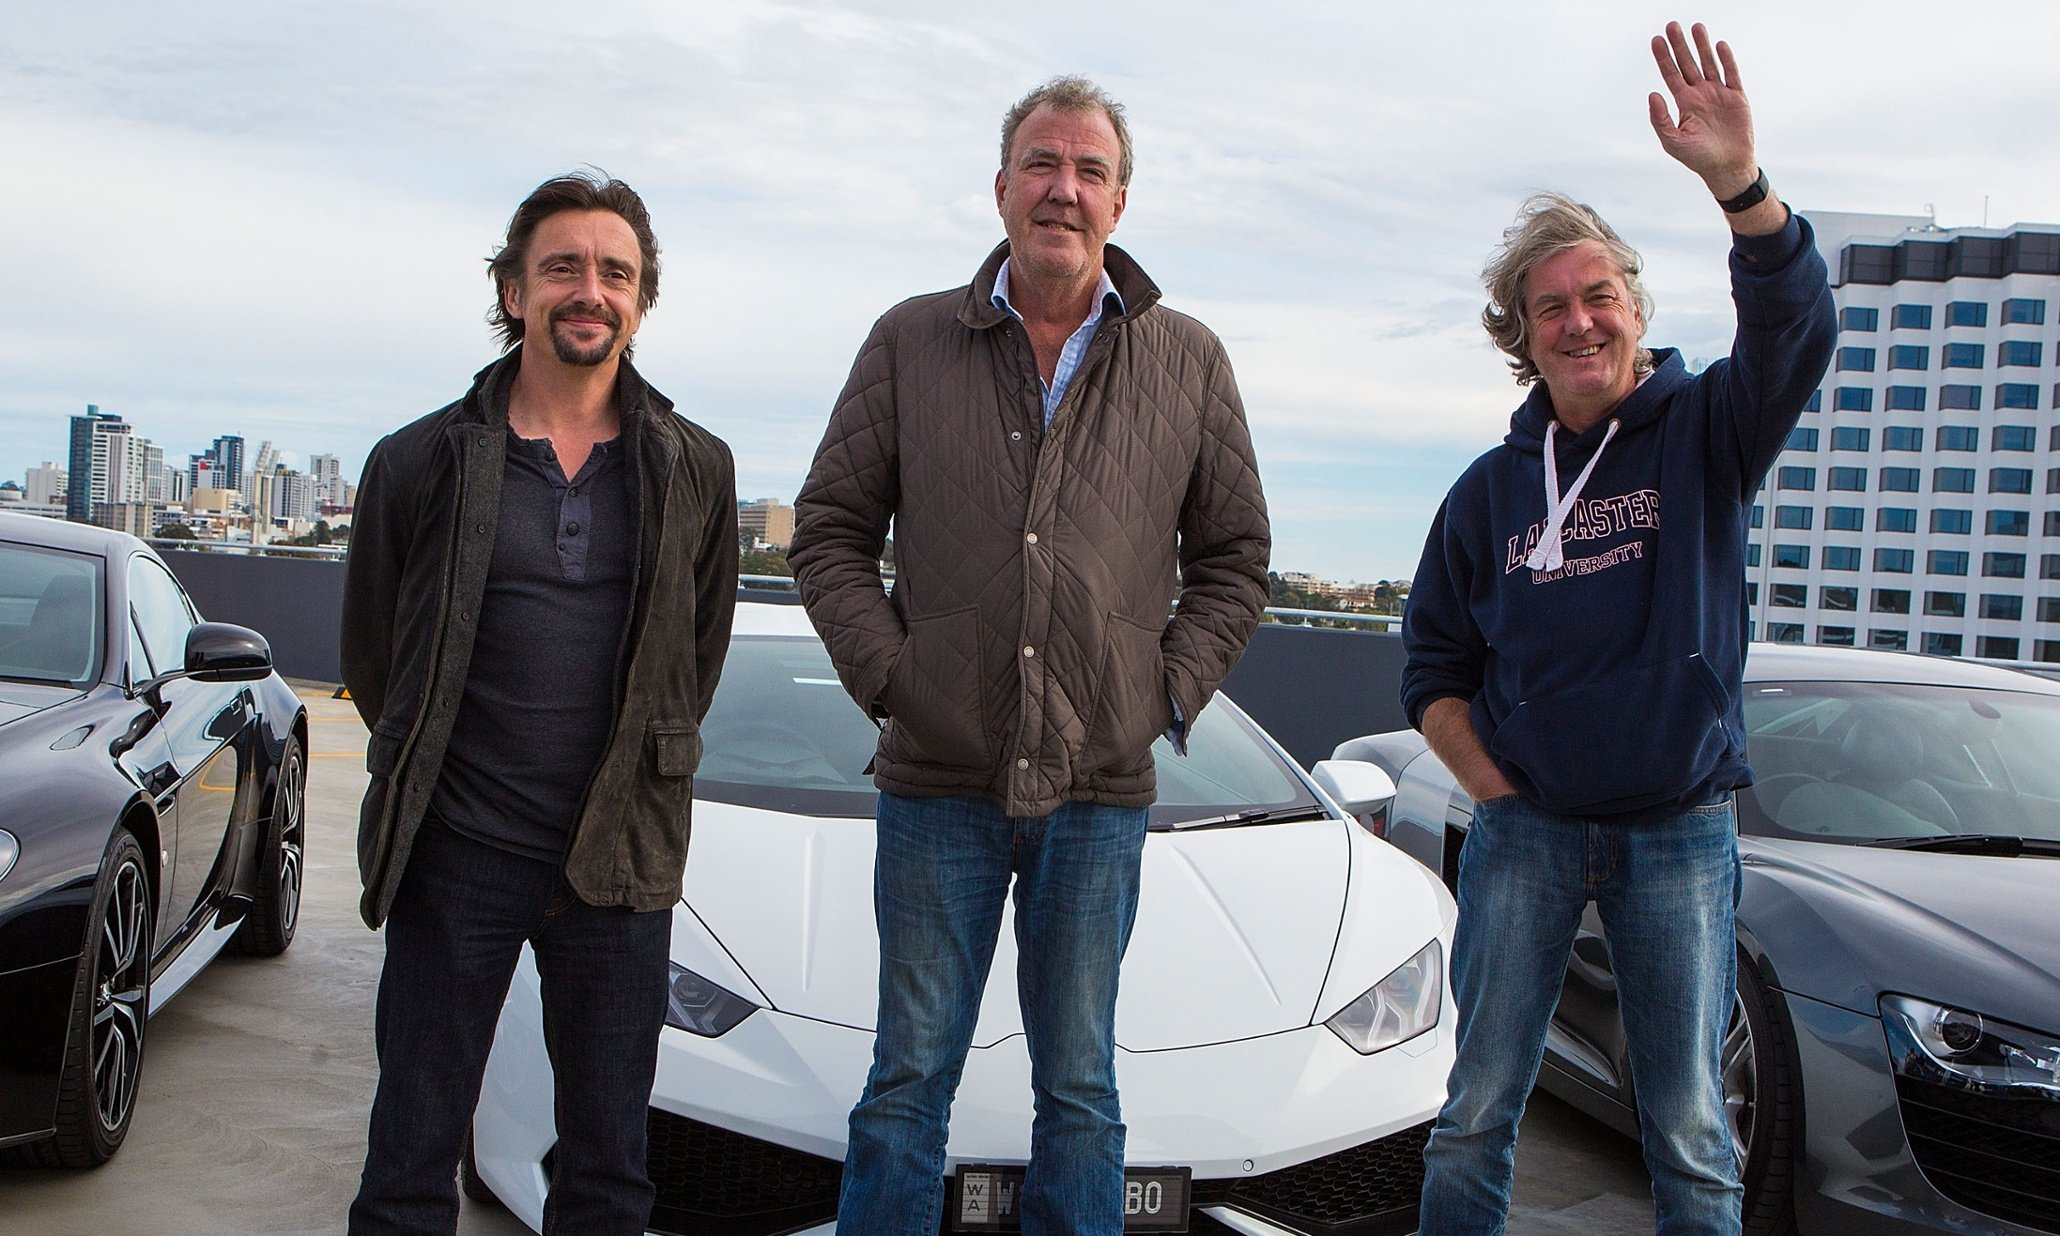 When Does The New Season Of The Grand Tour Start